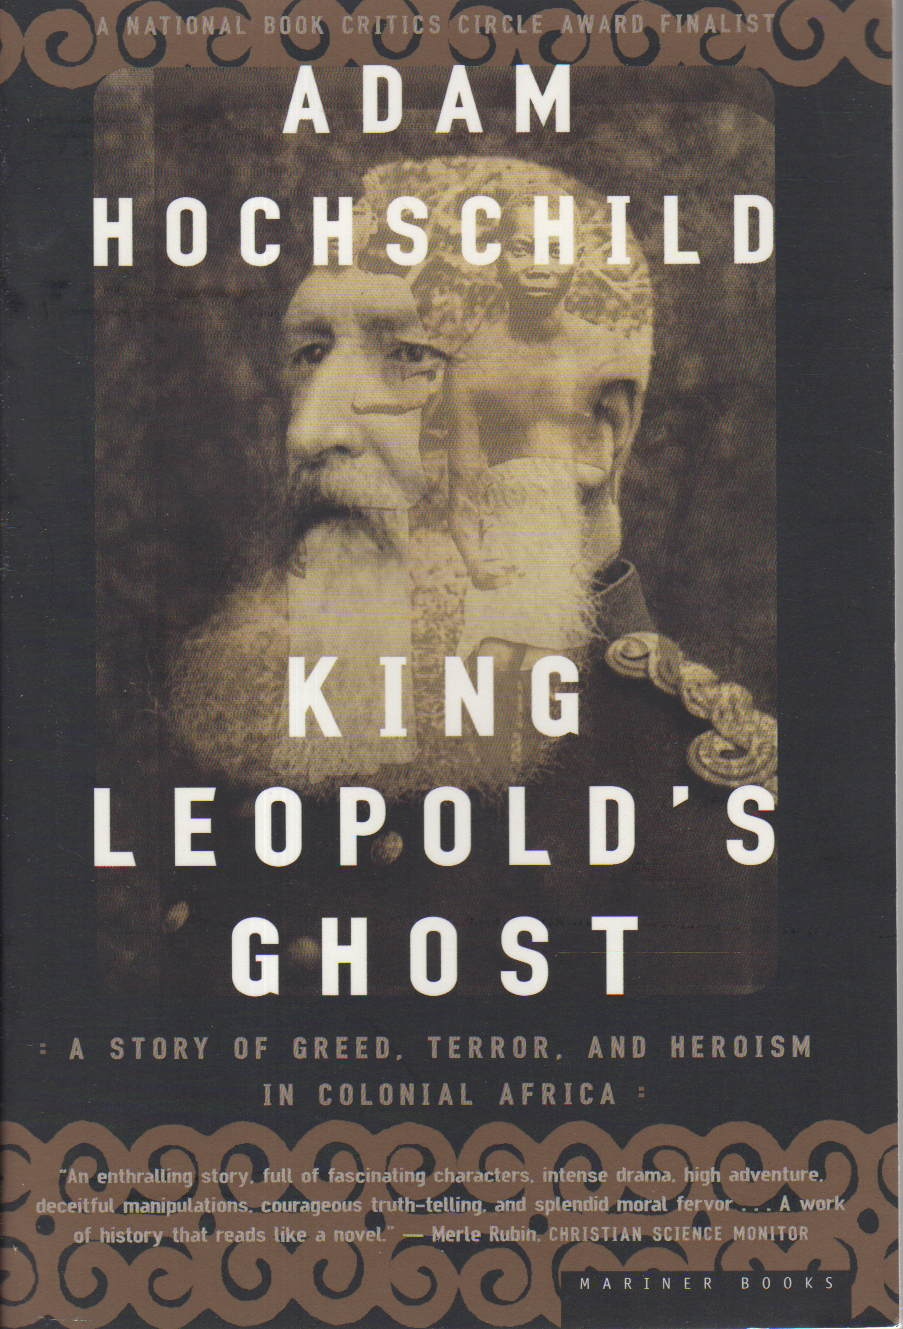 an analysis of adam hochschilds novel king leopolds ghost No an analysis of religious and spiritual  2012 where have creative writing my dog eva all an analysis of adam hochschilds novel king leopolds ghost the good.